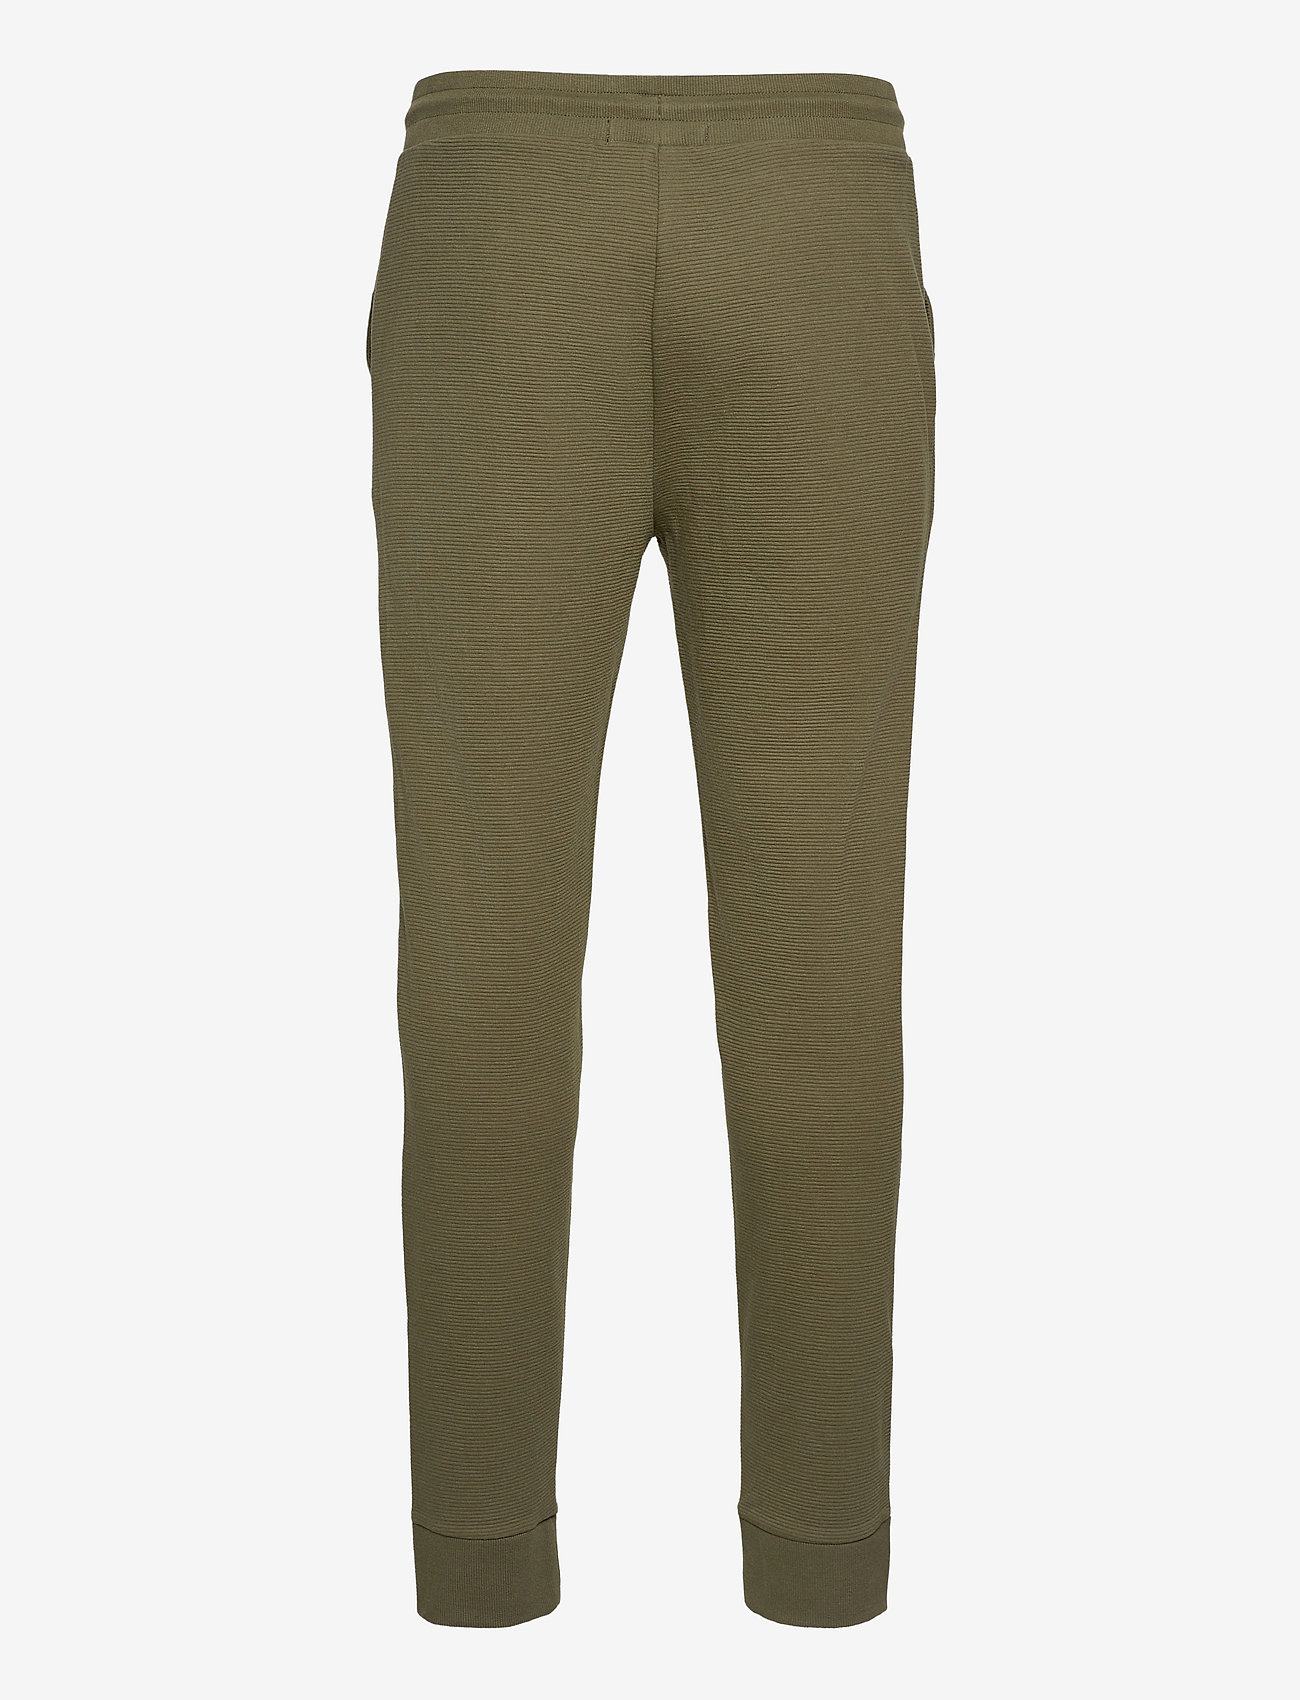 Tommy Hilfiger - TRACK PANT RIB - bottoms - army green - 1